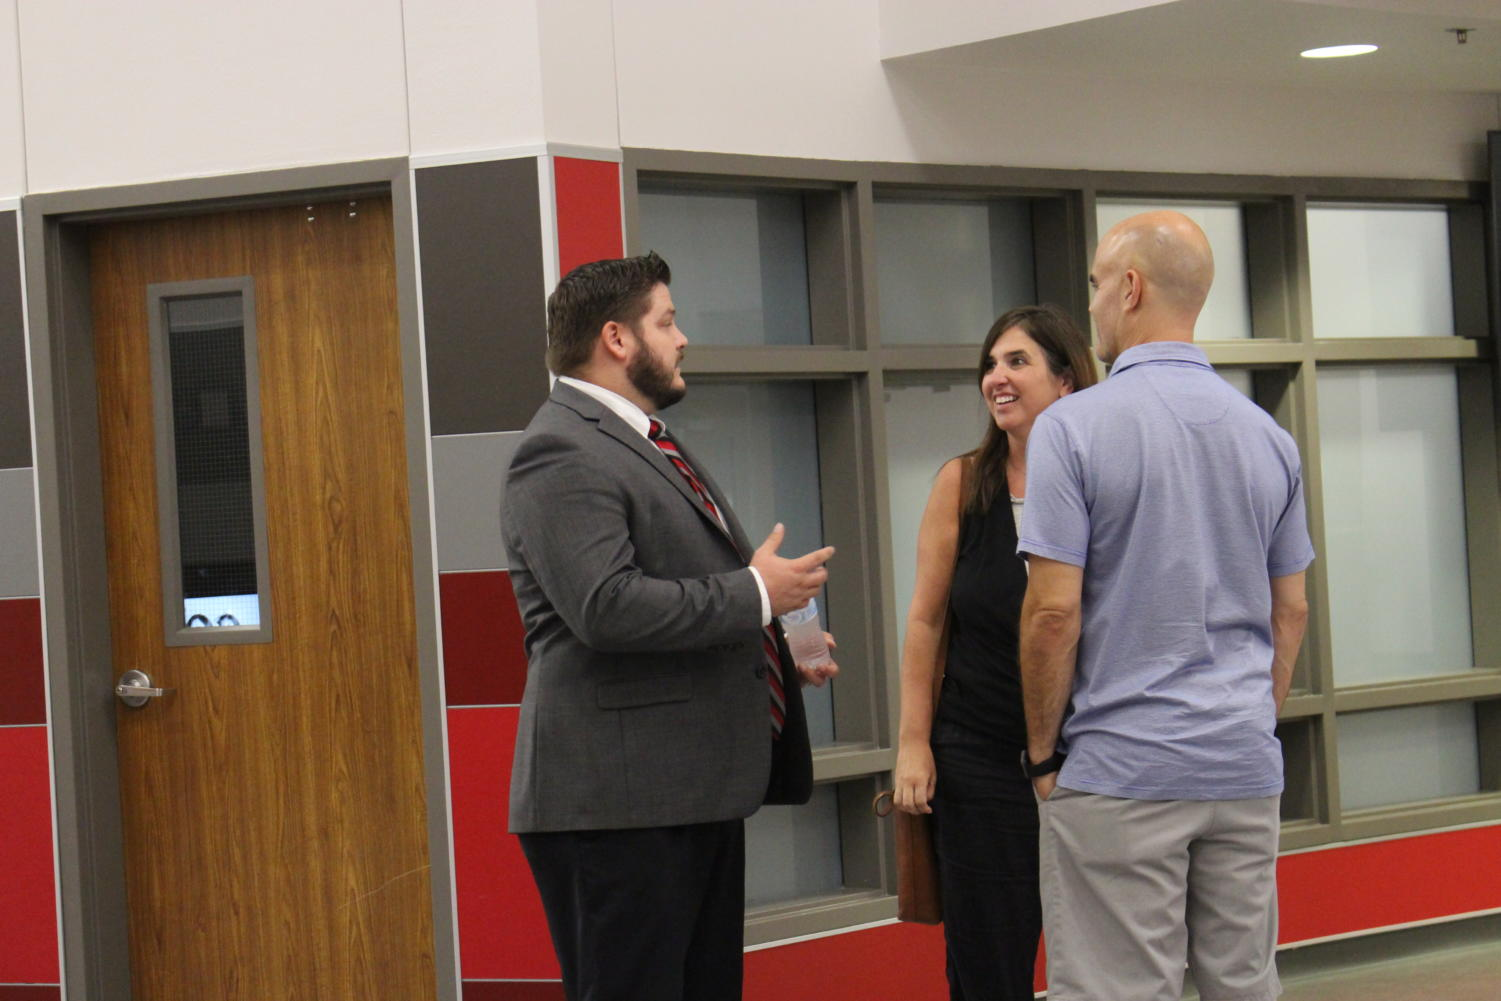 CHS9+Principal+Cody+Koontz+introduces+himself+to+freshman+parents+at+Curriculum+Night+near+the+main+entrance.+CHS9+Curriculum+Night+took+place+on+Tuesday+from+6-8+p.m.